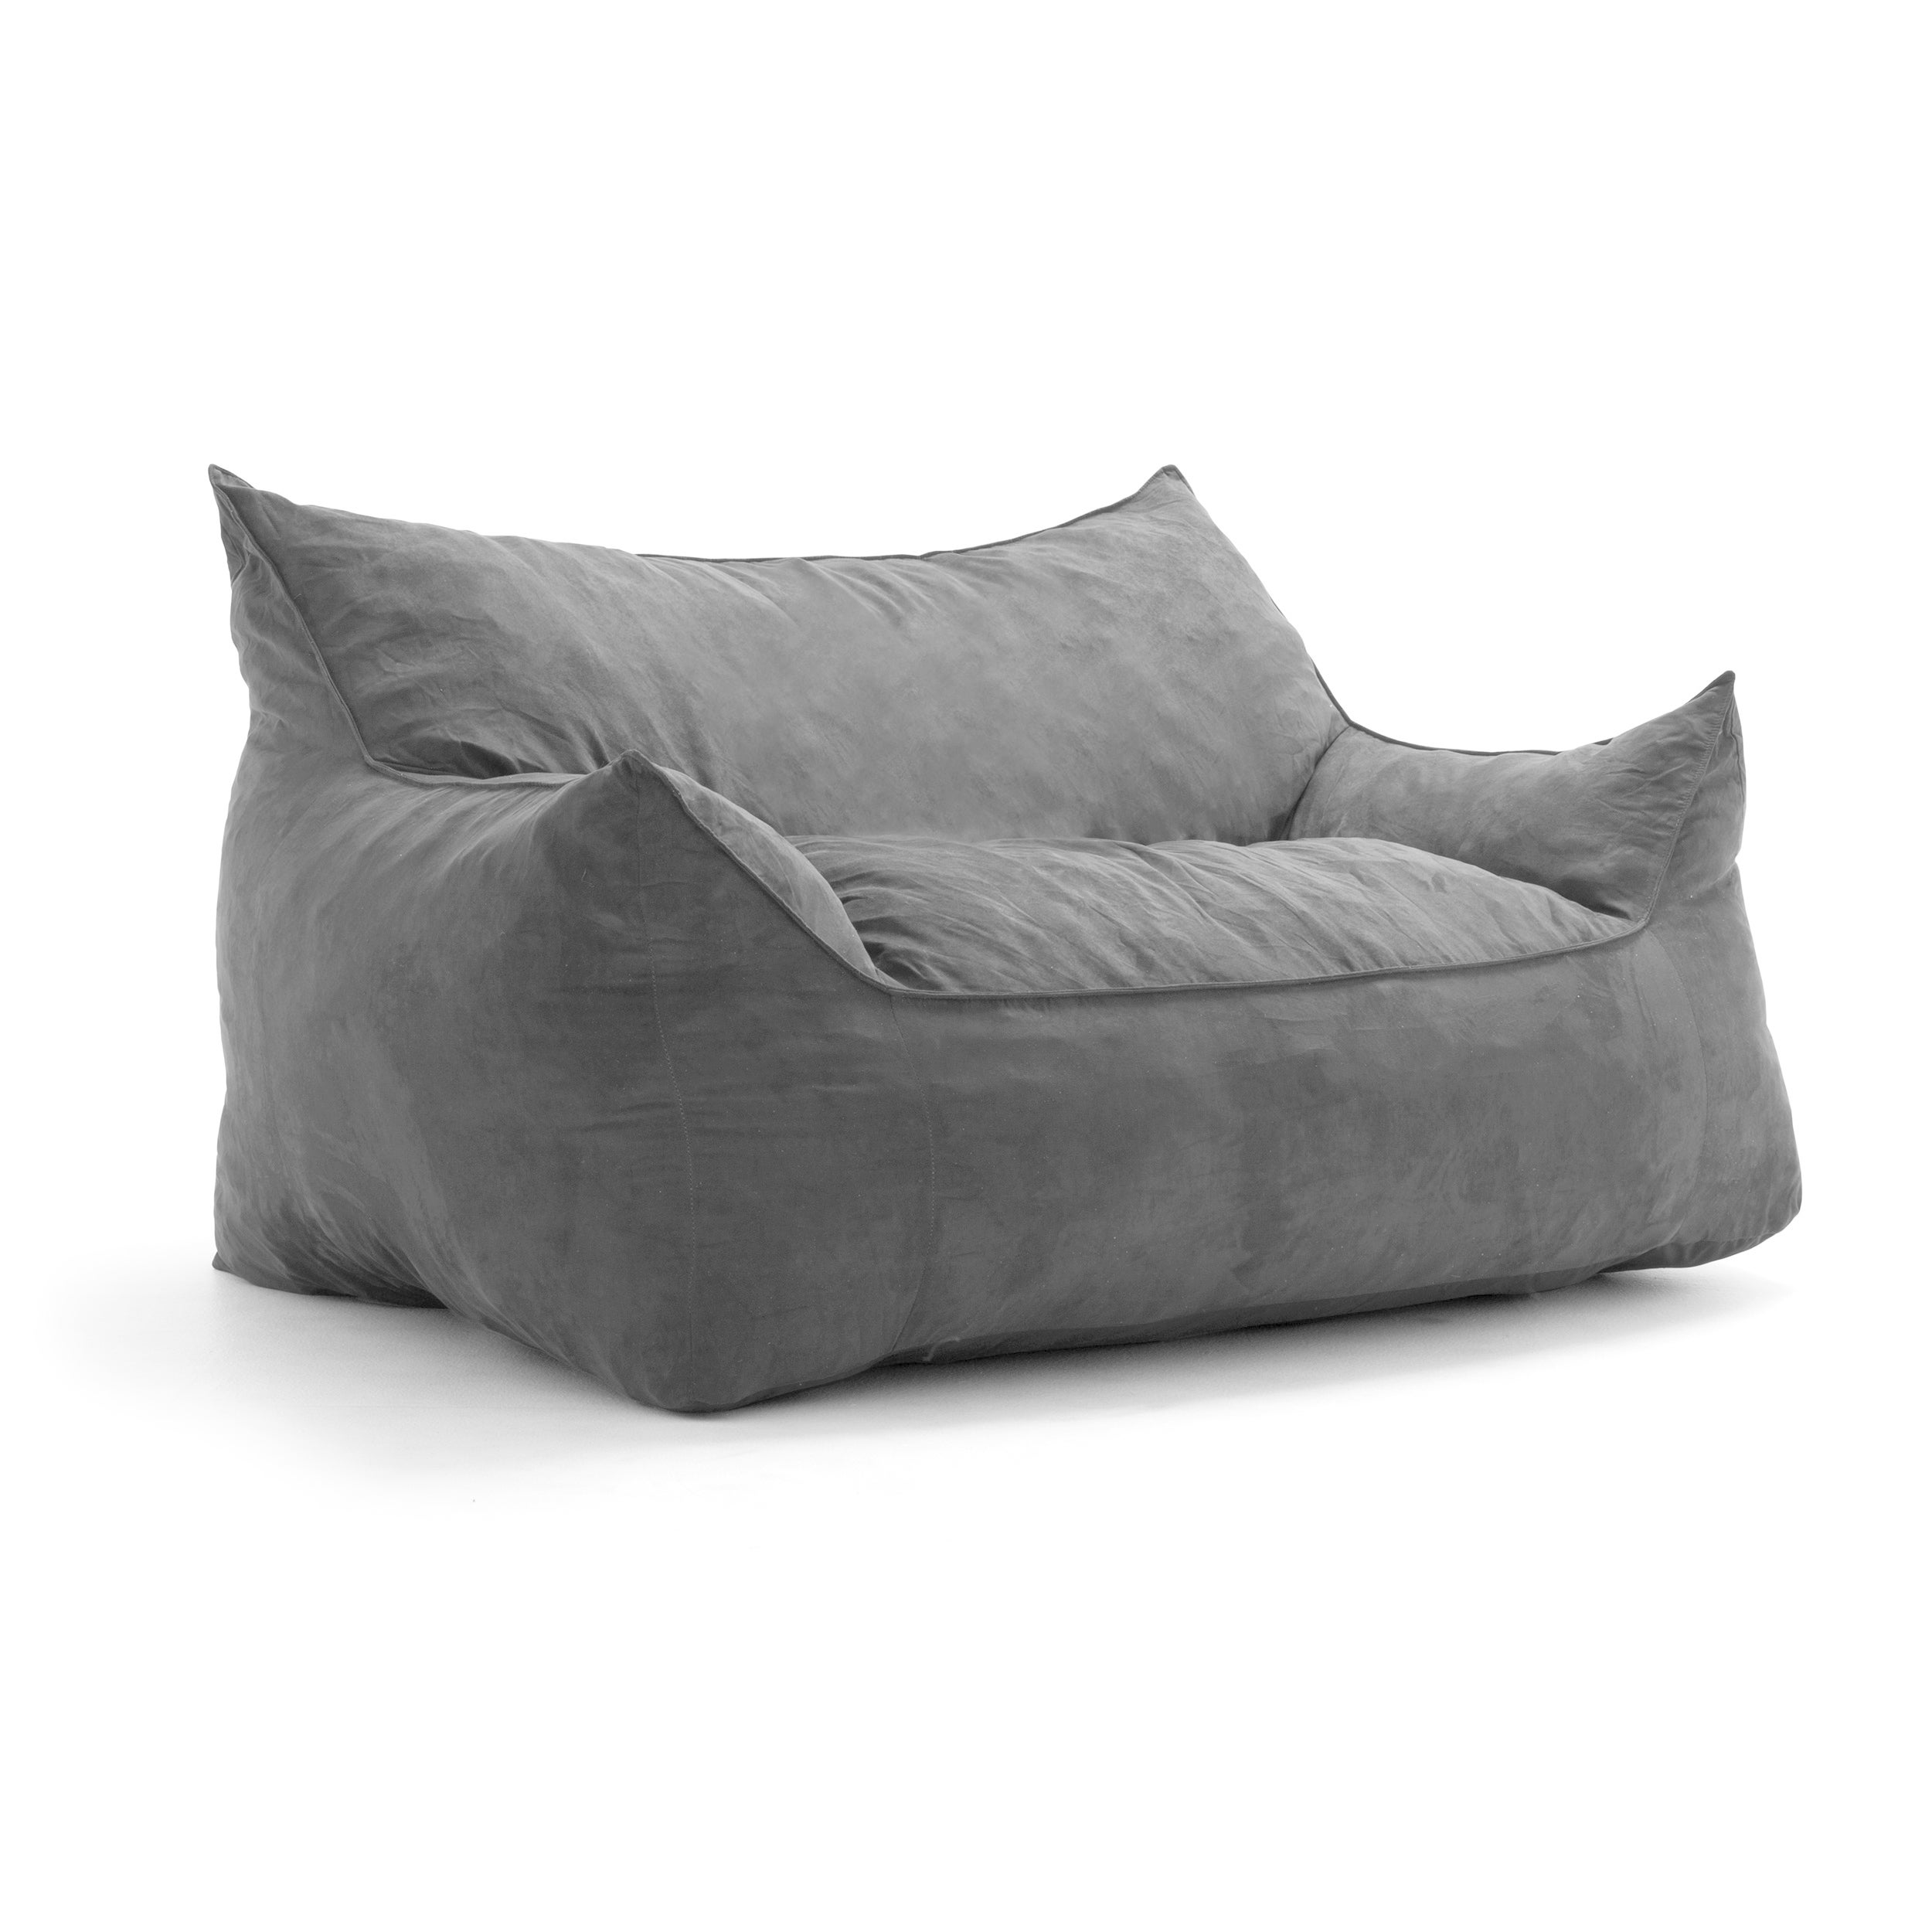 Joe Imperial Fufton Bean Bag Lounger